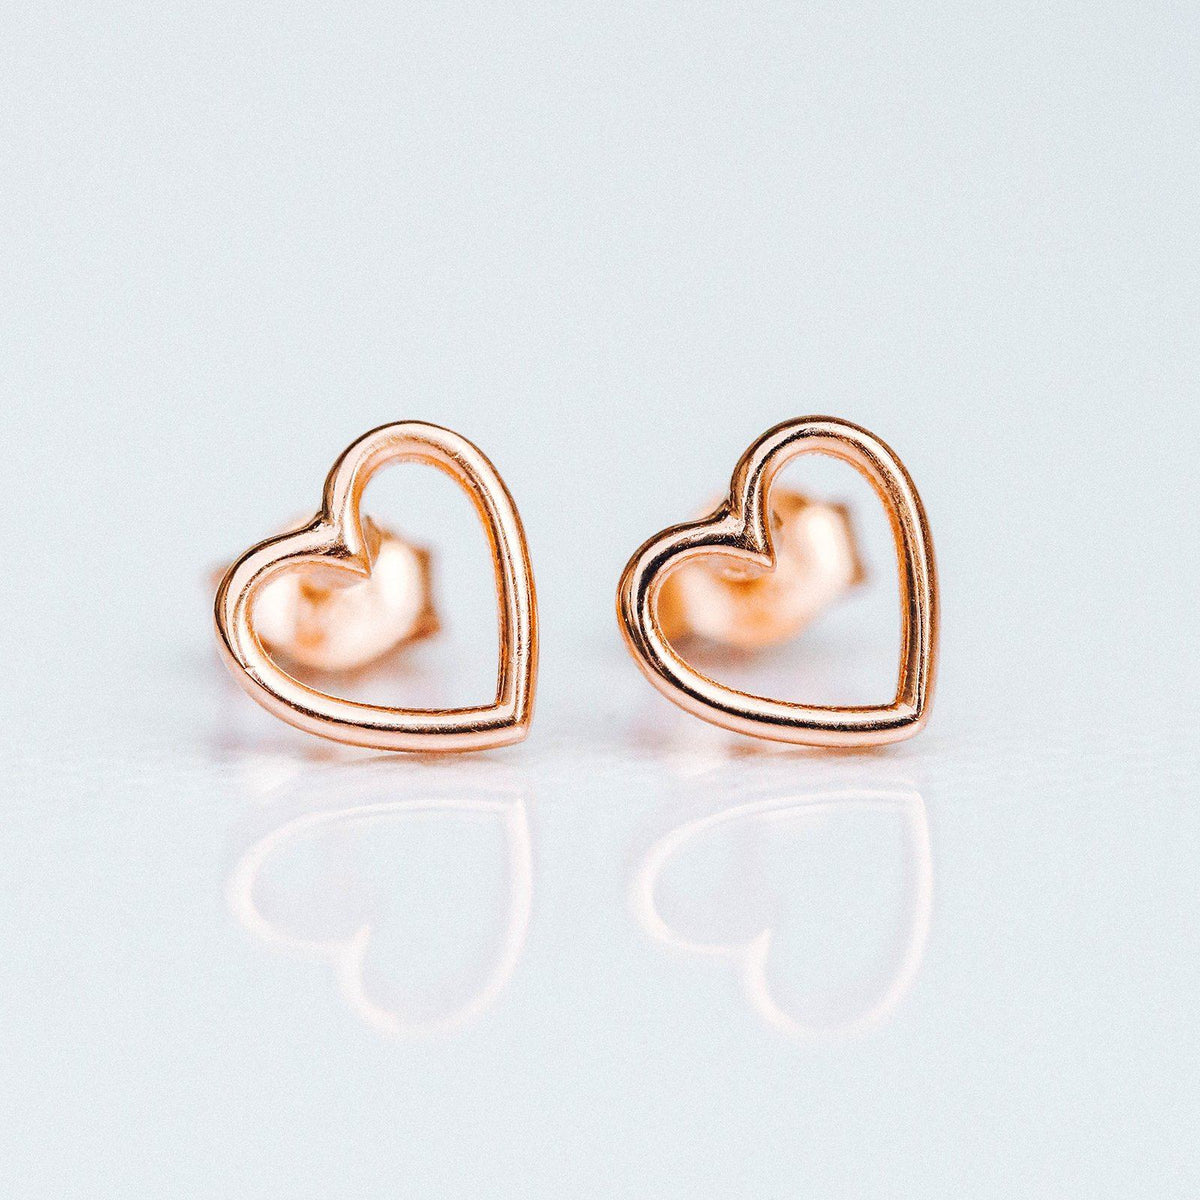 Open Heart Stud Earrings 6